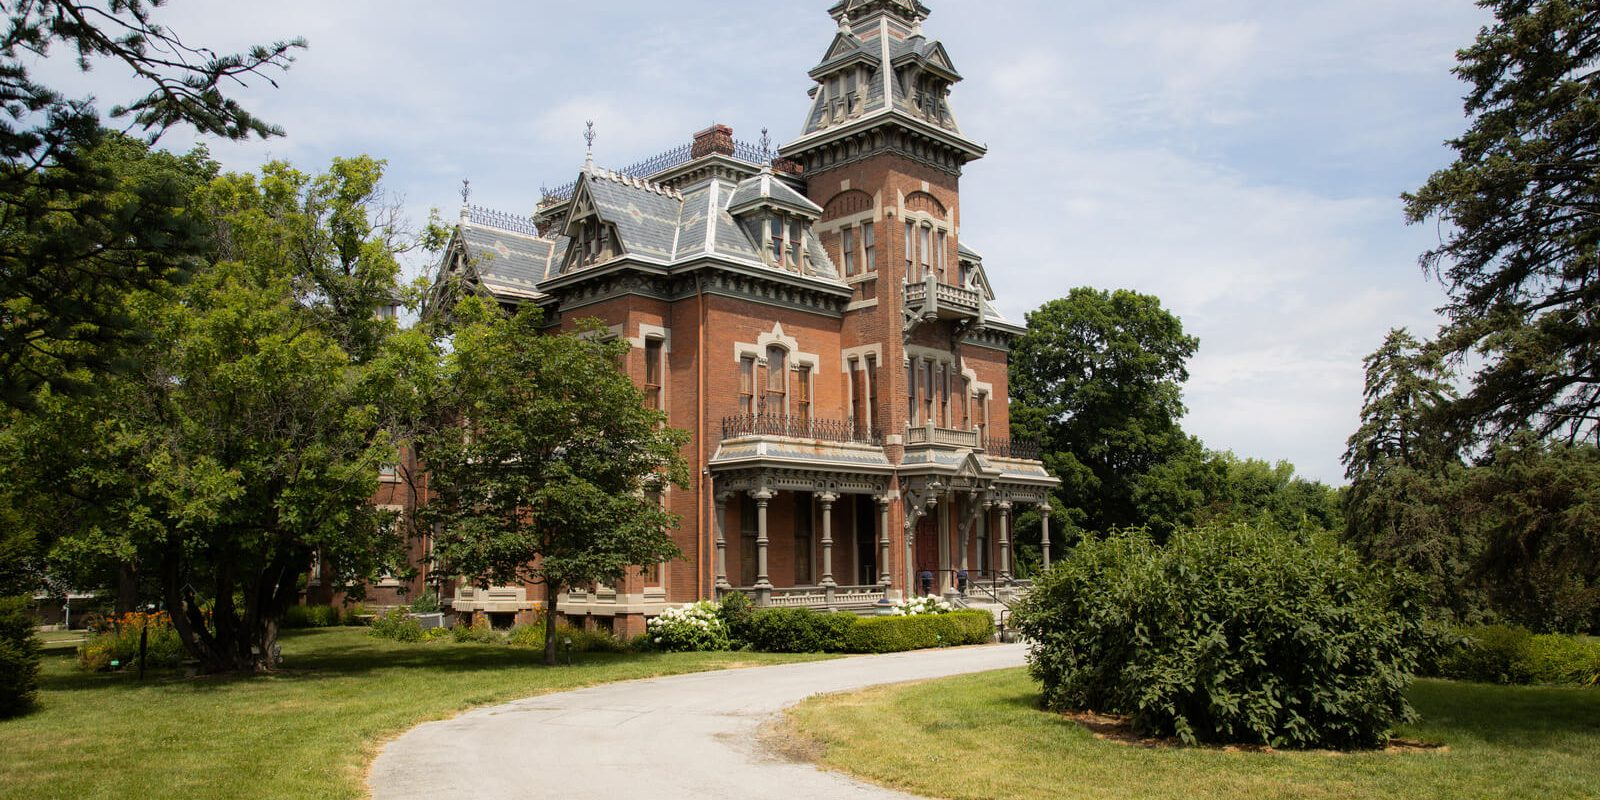 The Vaile Mansion in Independence, MO. A large Victorian Home,